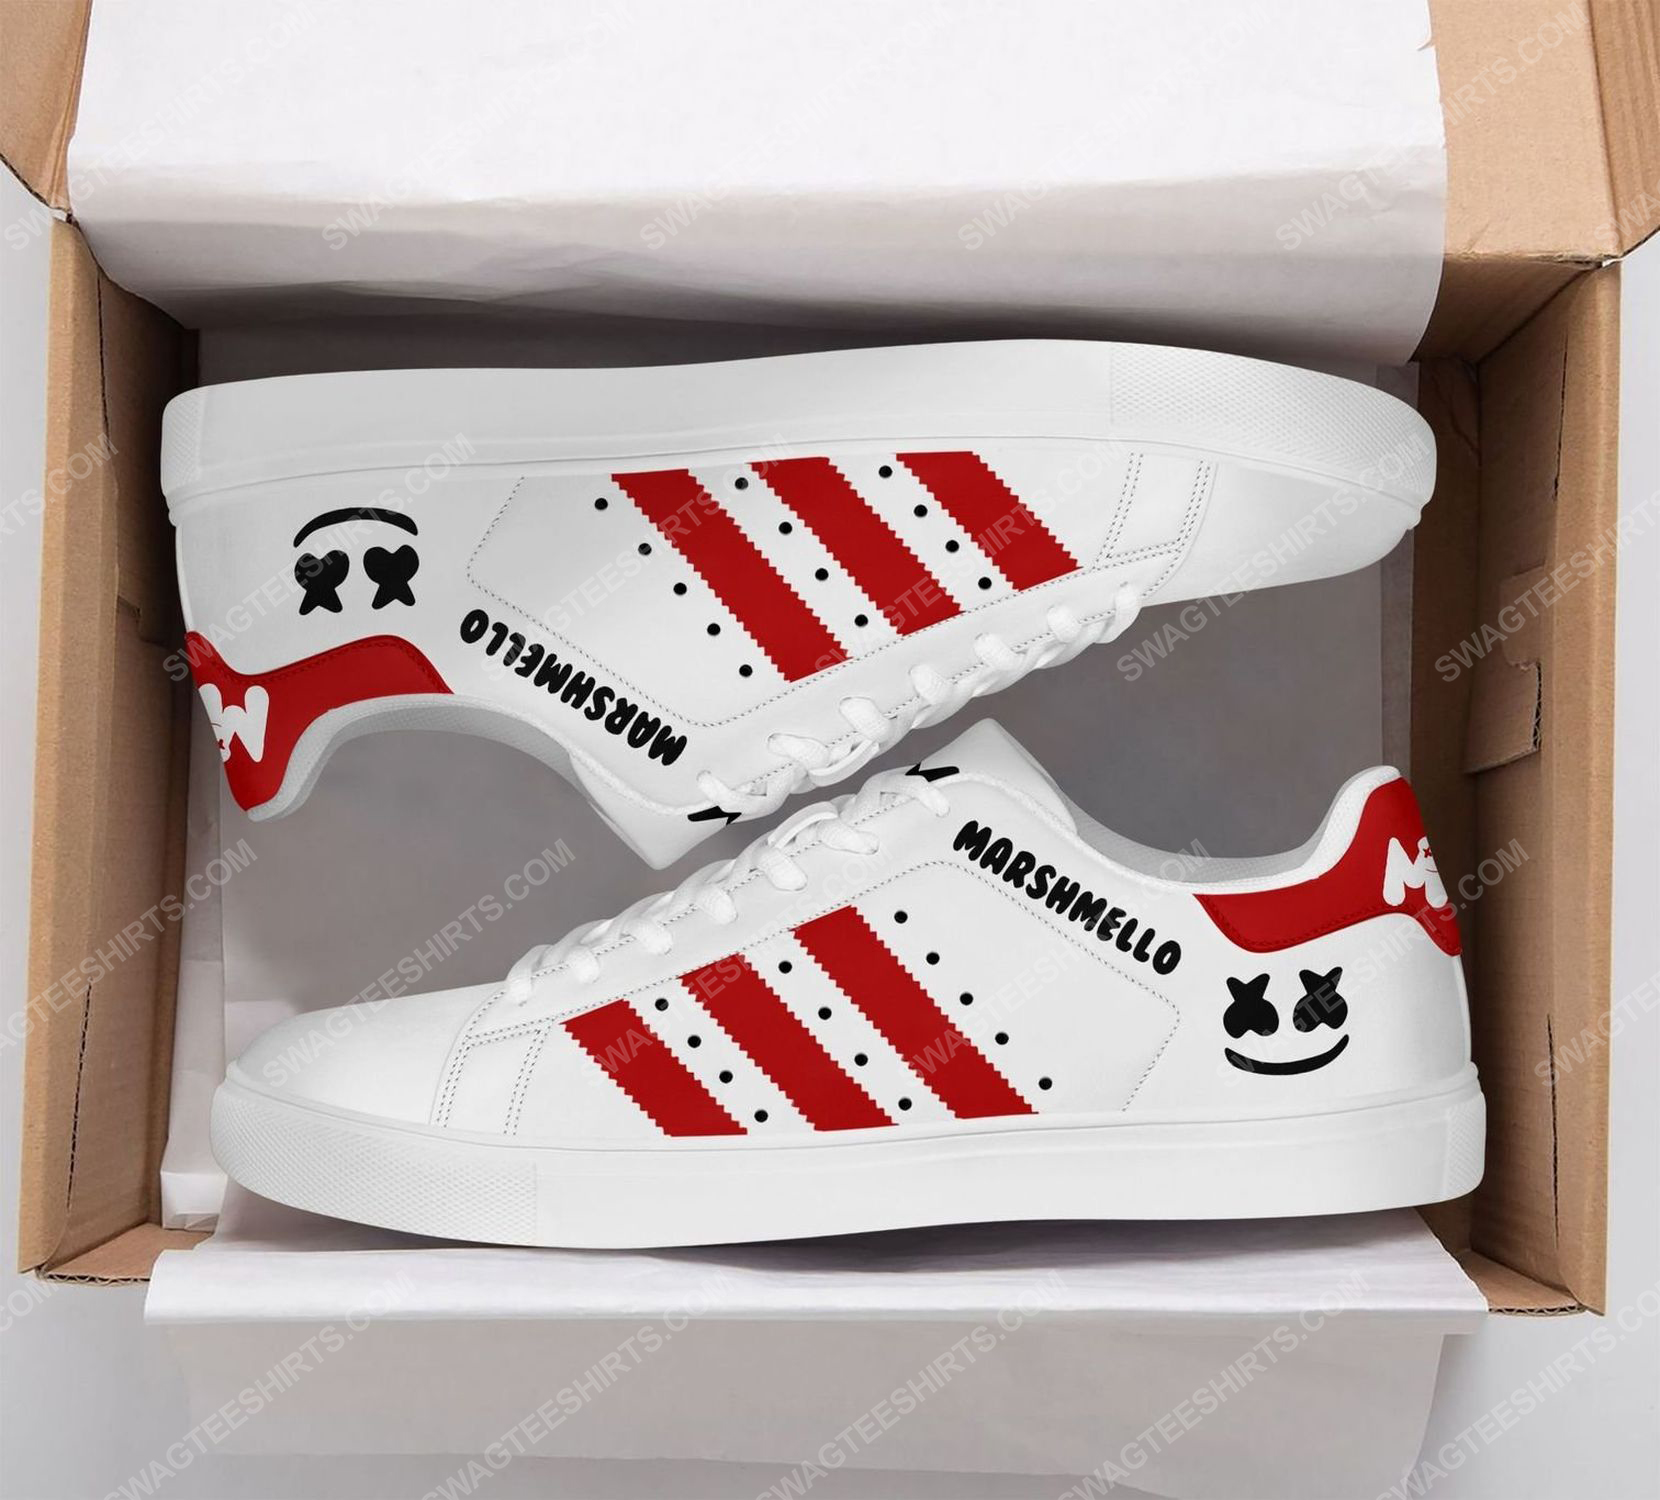 Marshmello american electronic music version red stan smith shoes 2